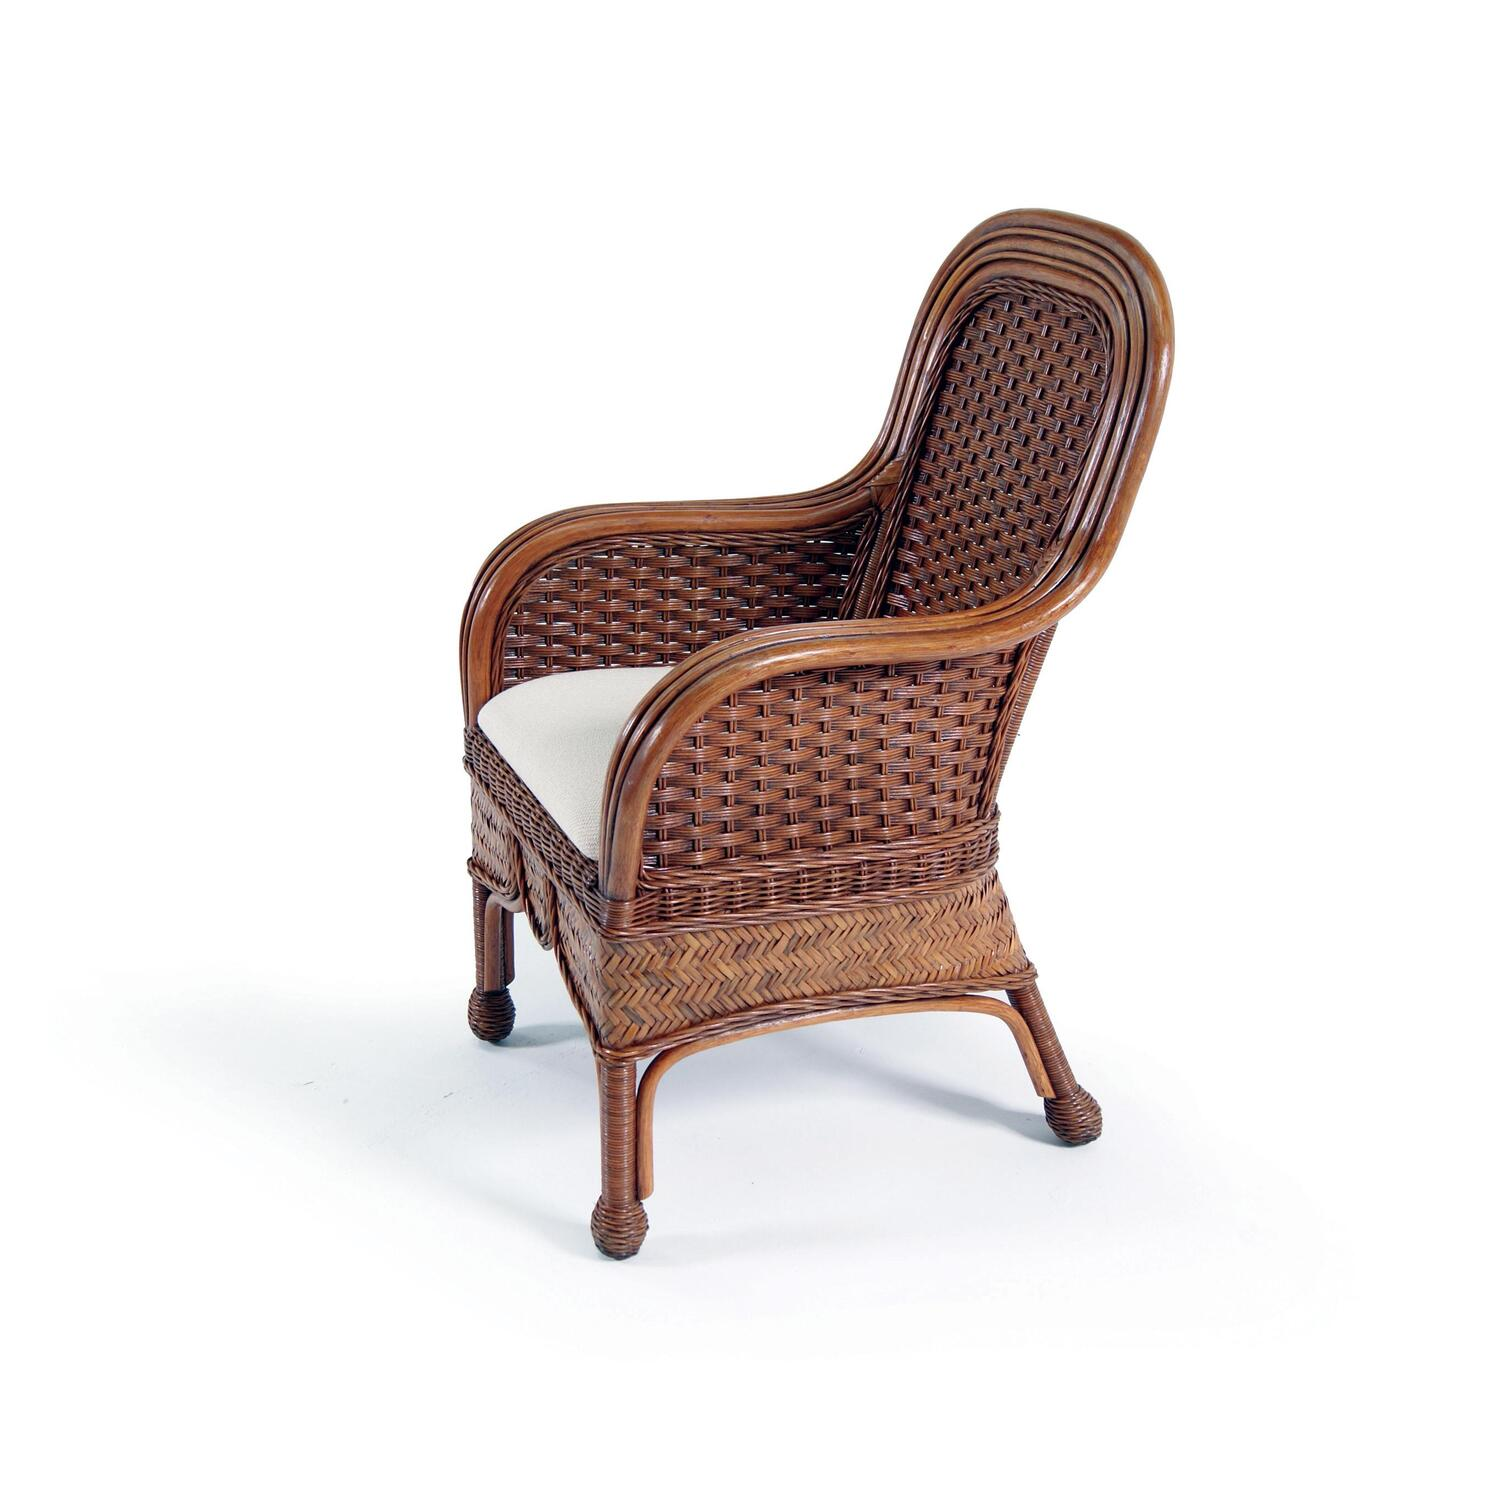 Moroccan Dining Arm Chair in Urban Mahogany  From 66342